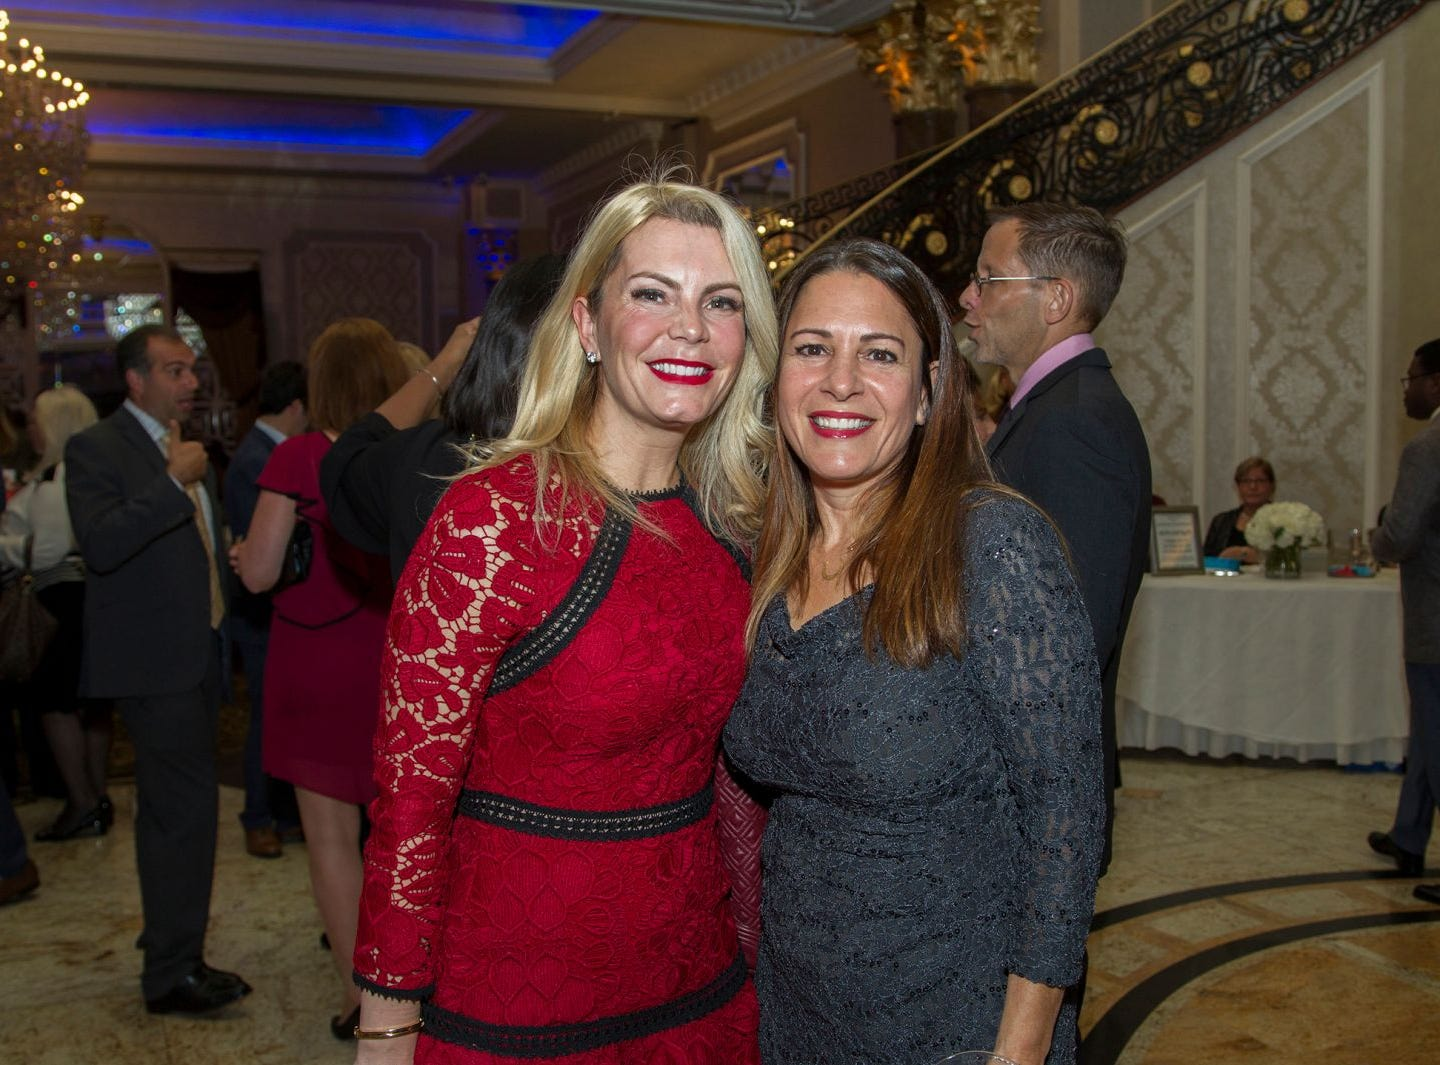 Alisha Alaimo, Laura Boodaghian. Holy Name Medical Center held its 2018 MS Center Awards Reception at the Venetian in Garfield. 10/23/2018